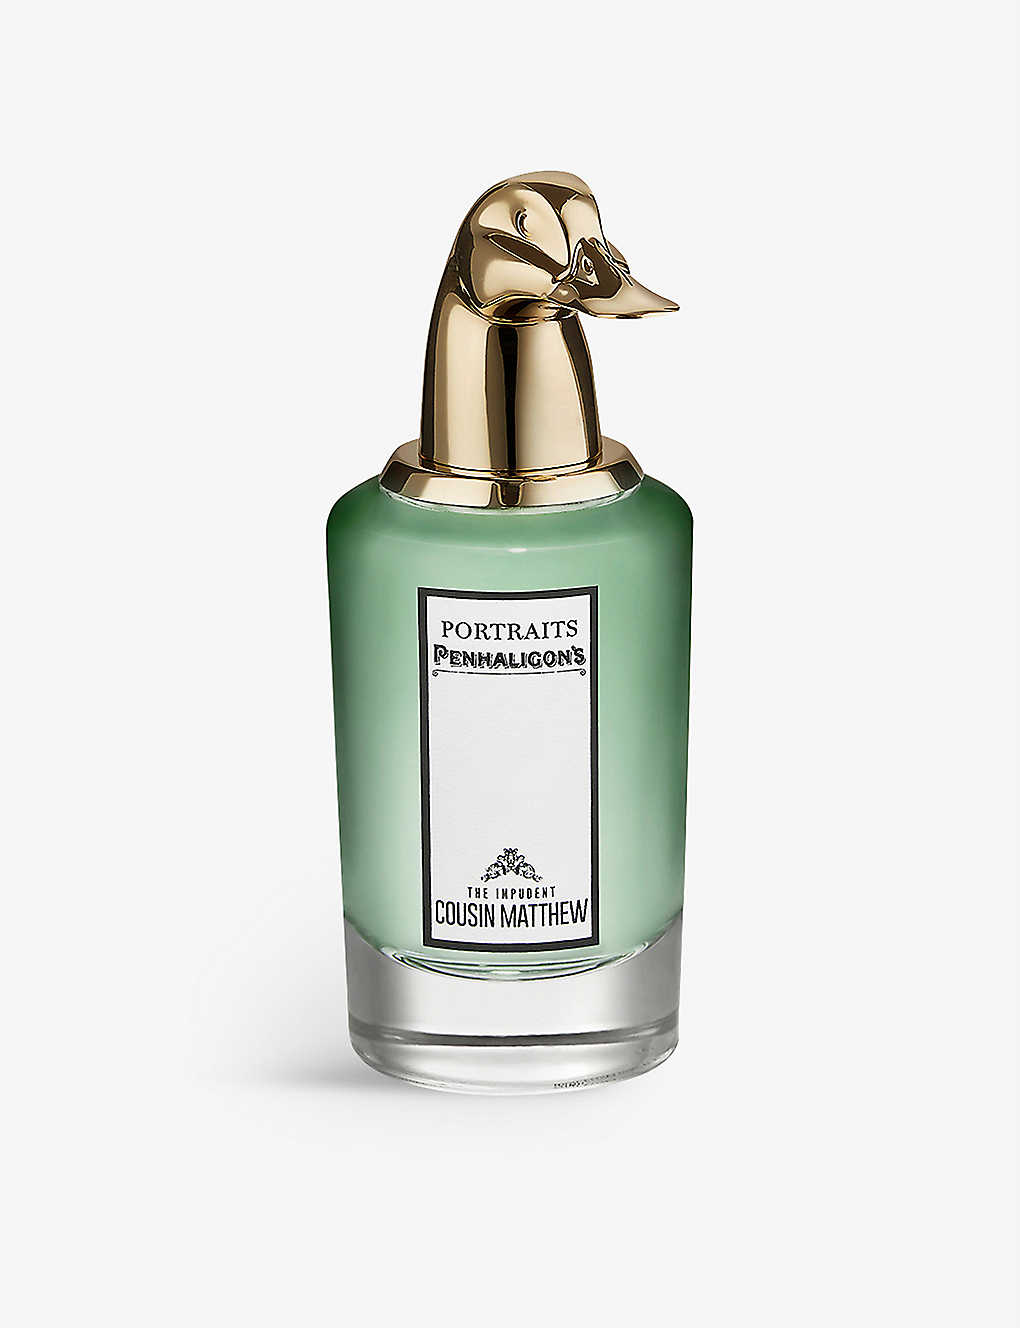 PENHALIGONS: The Impudent Cousin Matthew eau de parfum 75ml